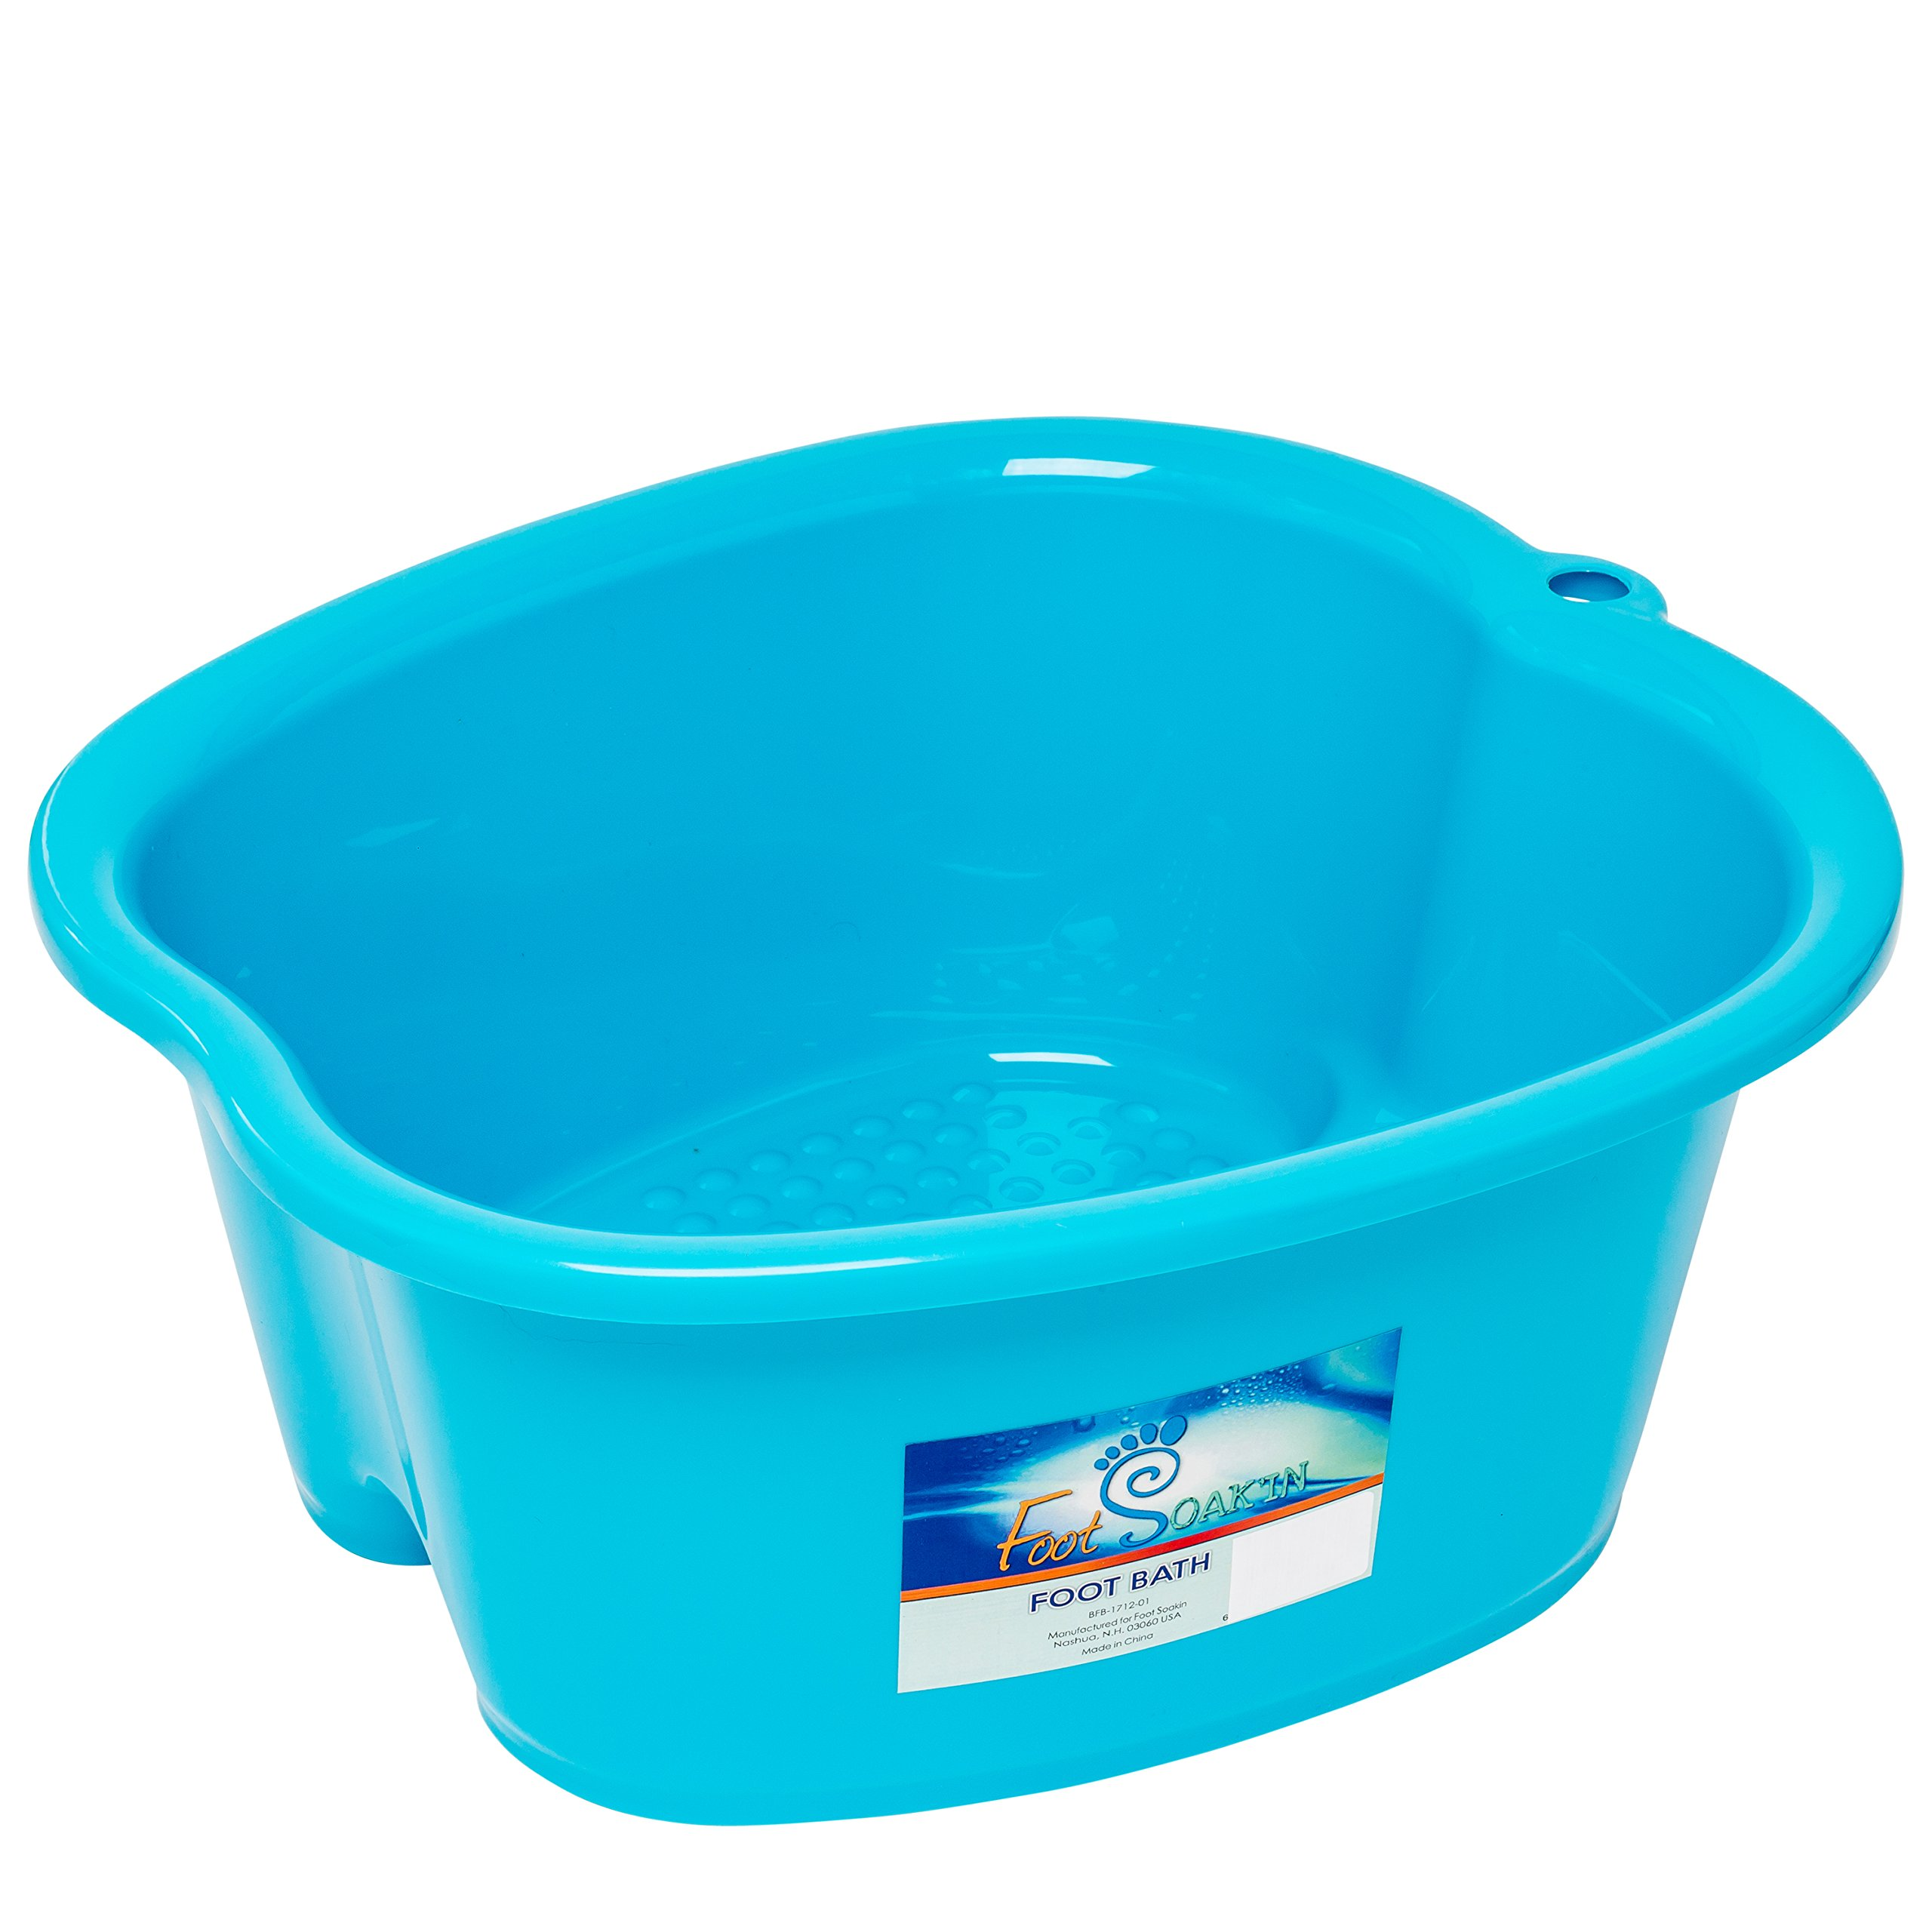 Large Foot Bath Spa Tub - Thick Sturdy Plastic Foot Basin for Pedicure, Detox, and Massage - Perfect to Soak Your Feet, Toe Nails, and Ankles